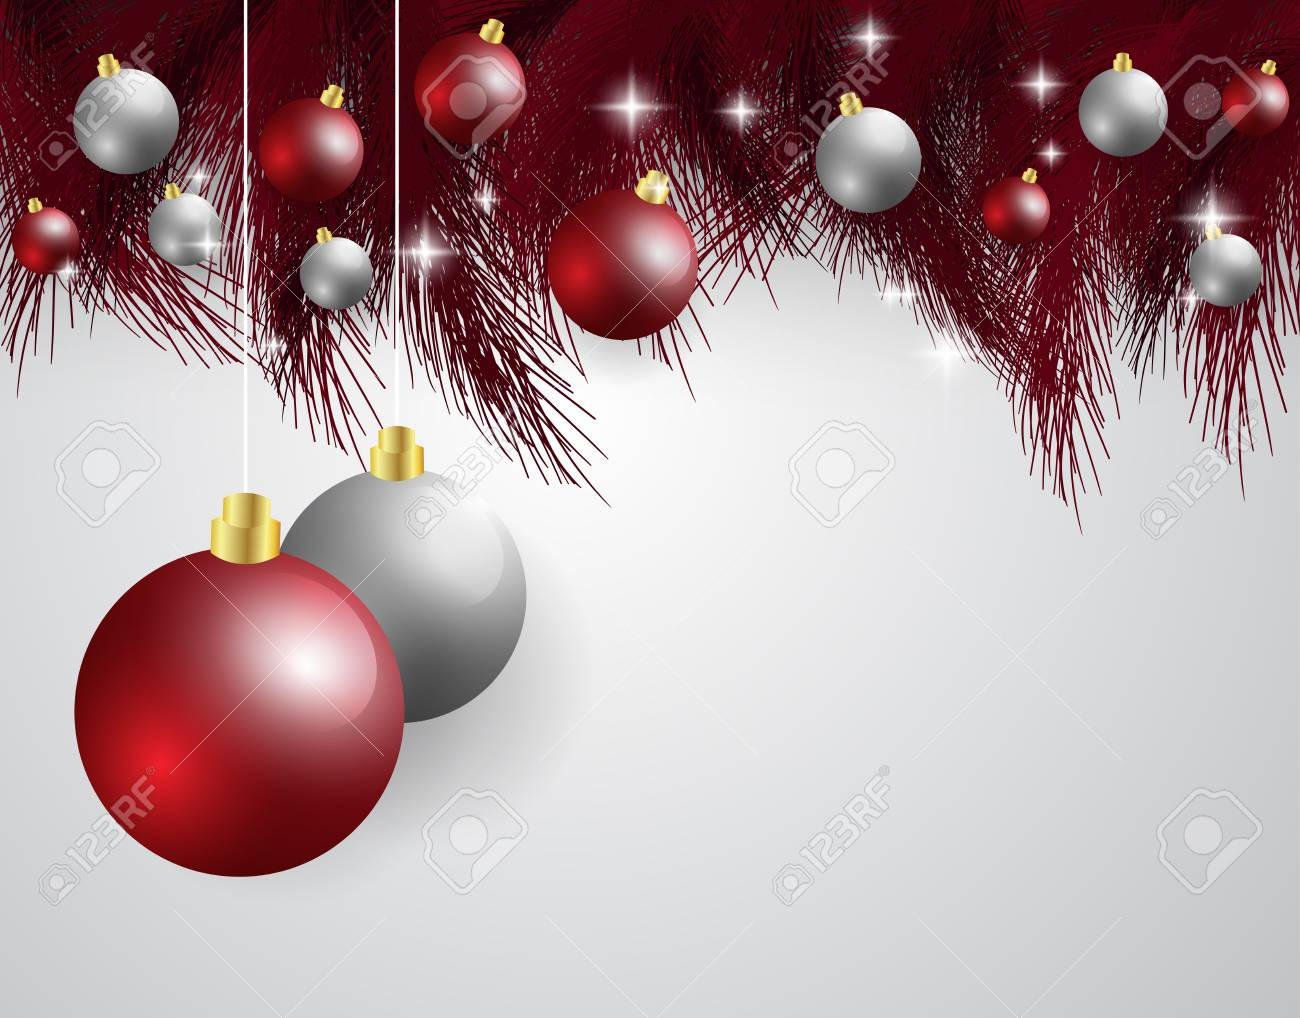 Glitzer Bilder Weihnachten.Stock Photo